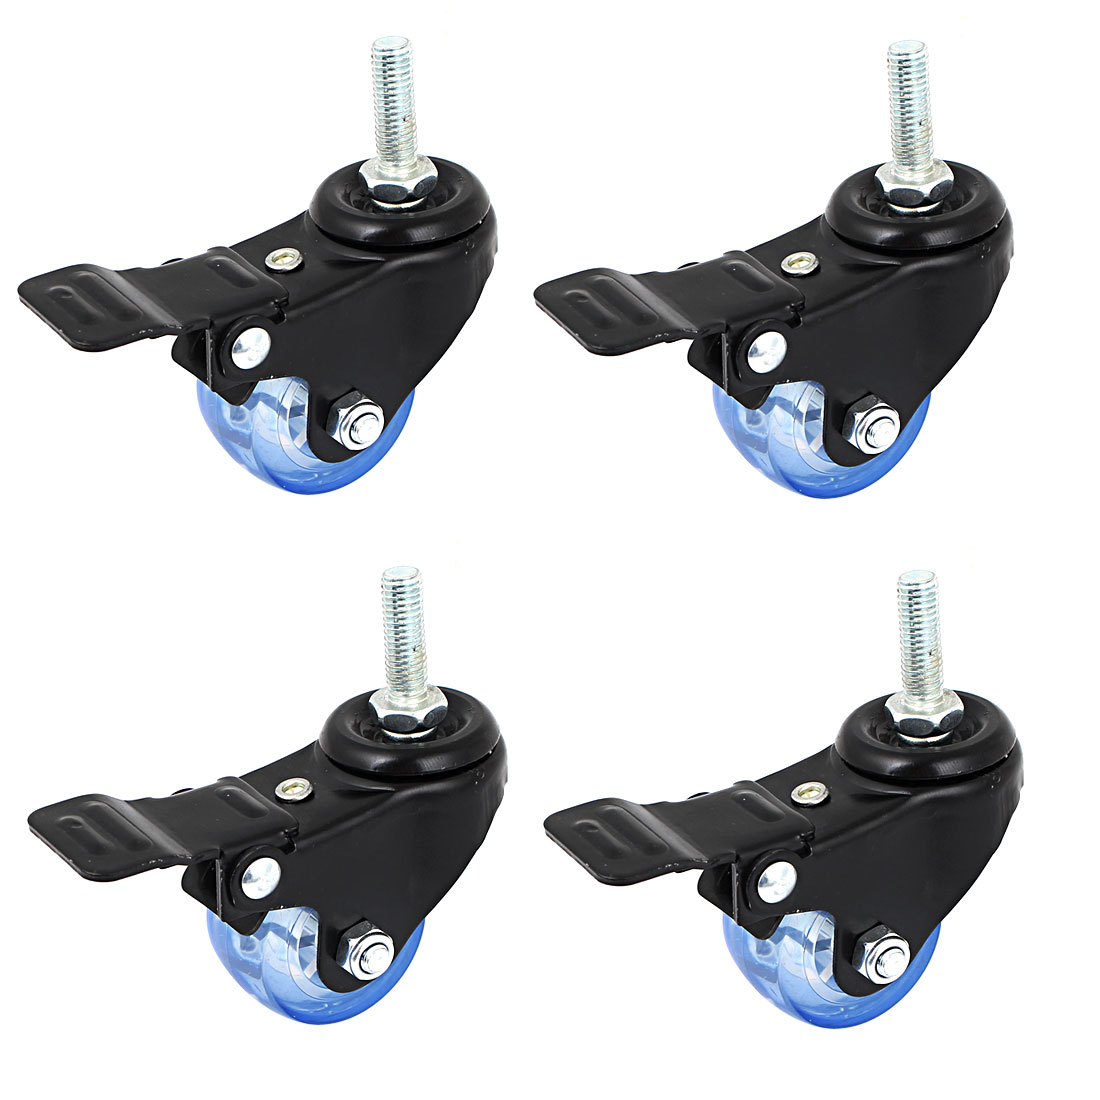 40mm Dia Swivel Bolt Hole Castor Wheels Trolley Furniture Caster 4pcs